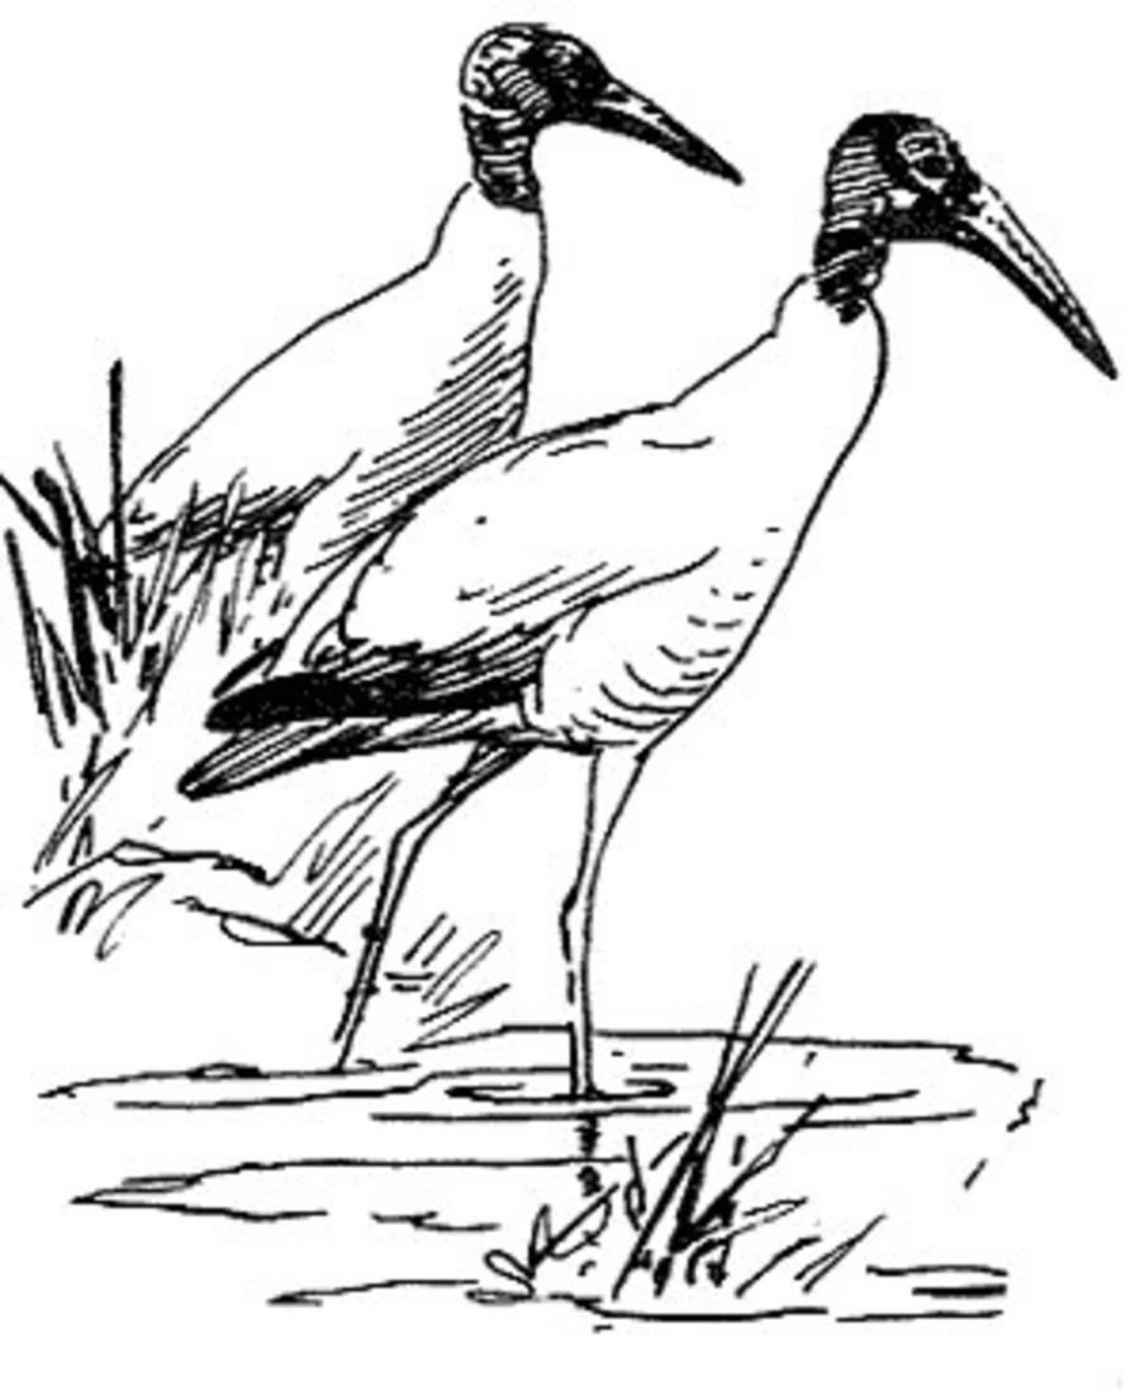 Wood stork birds wading mycteria americana black and white drawing art Fashion Stork